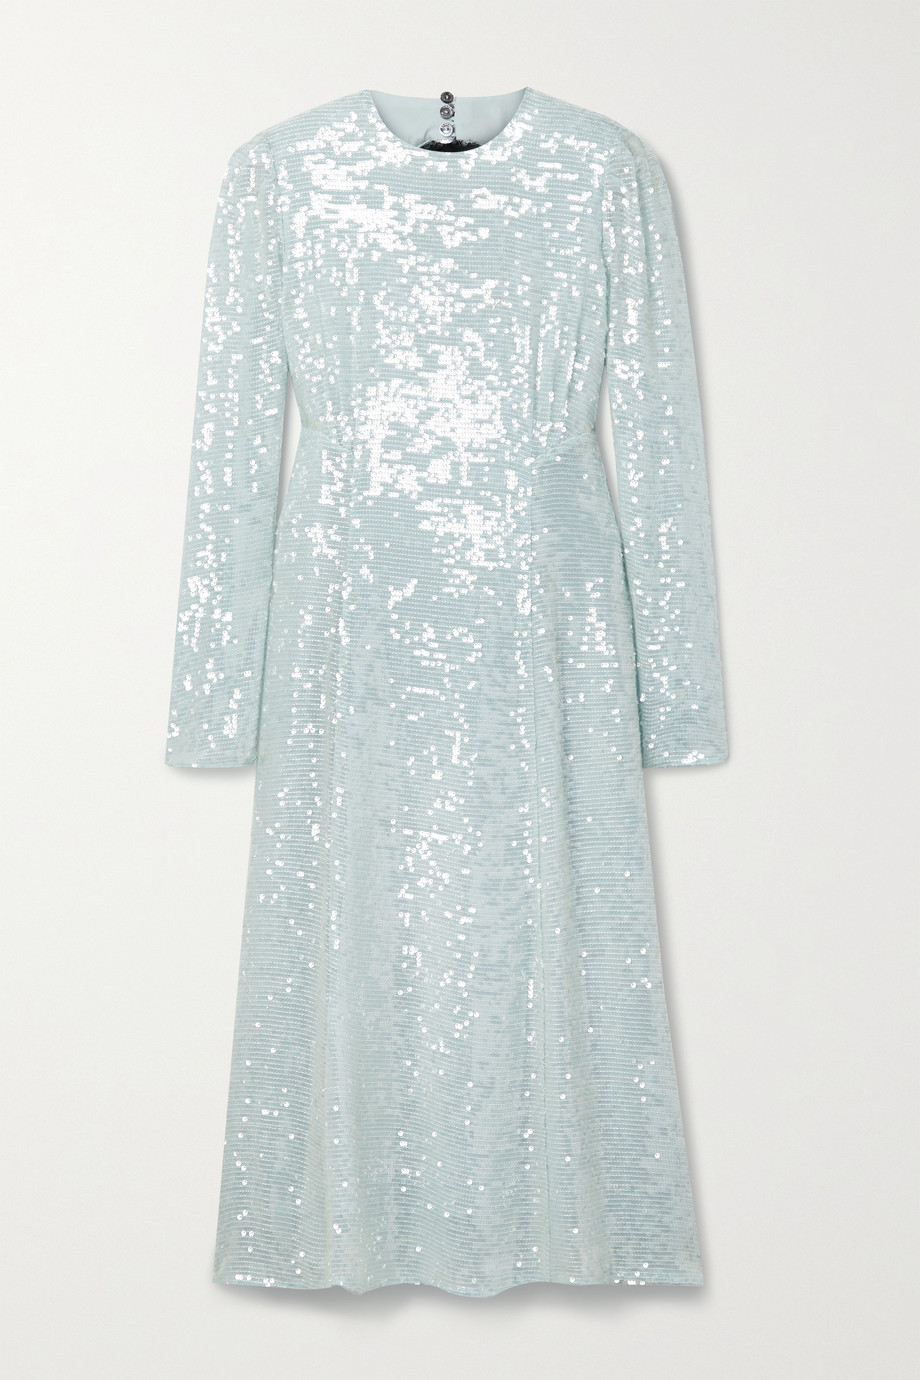 Erdem Cutout sequined tulle midi dress